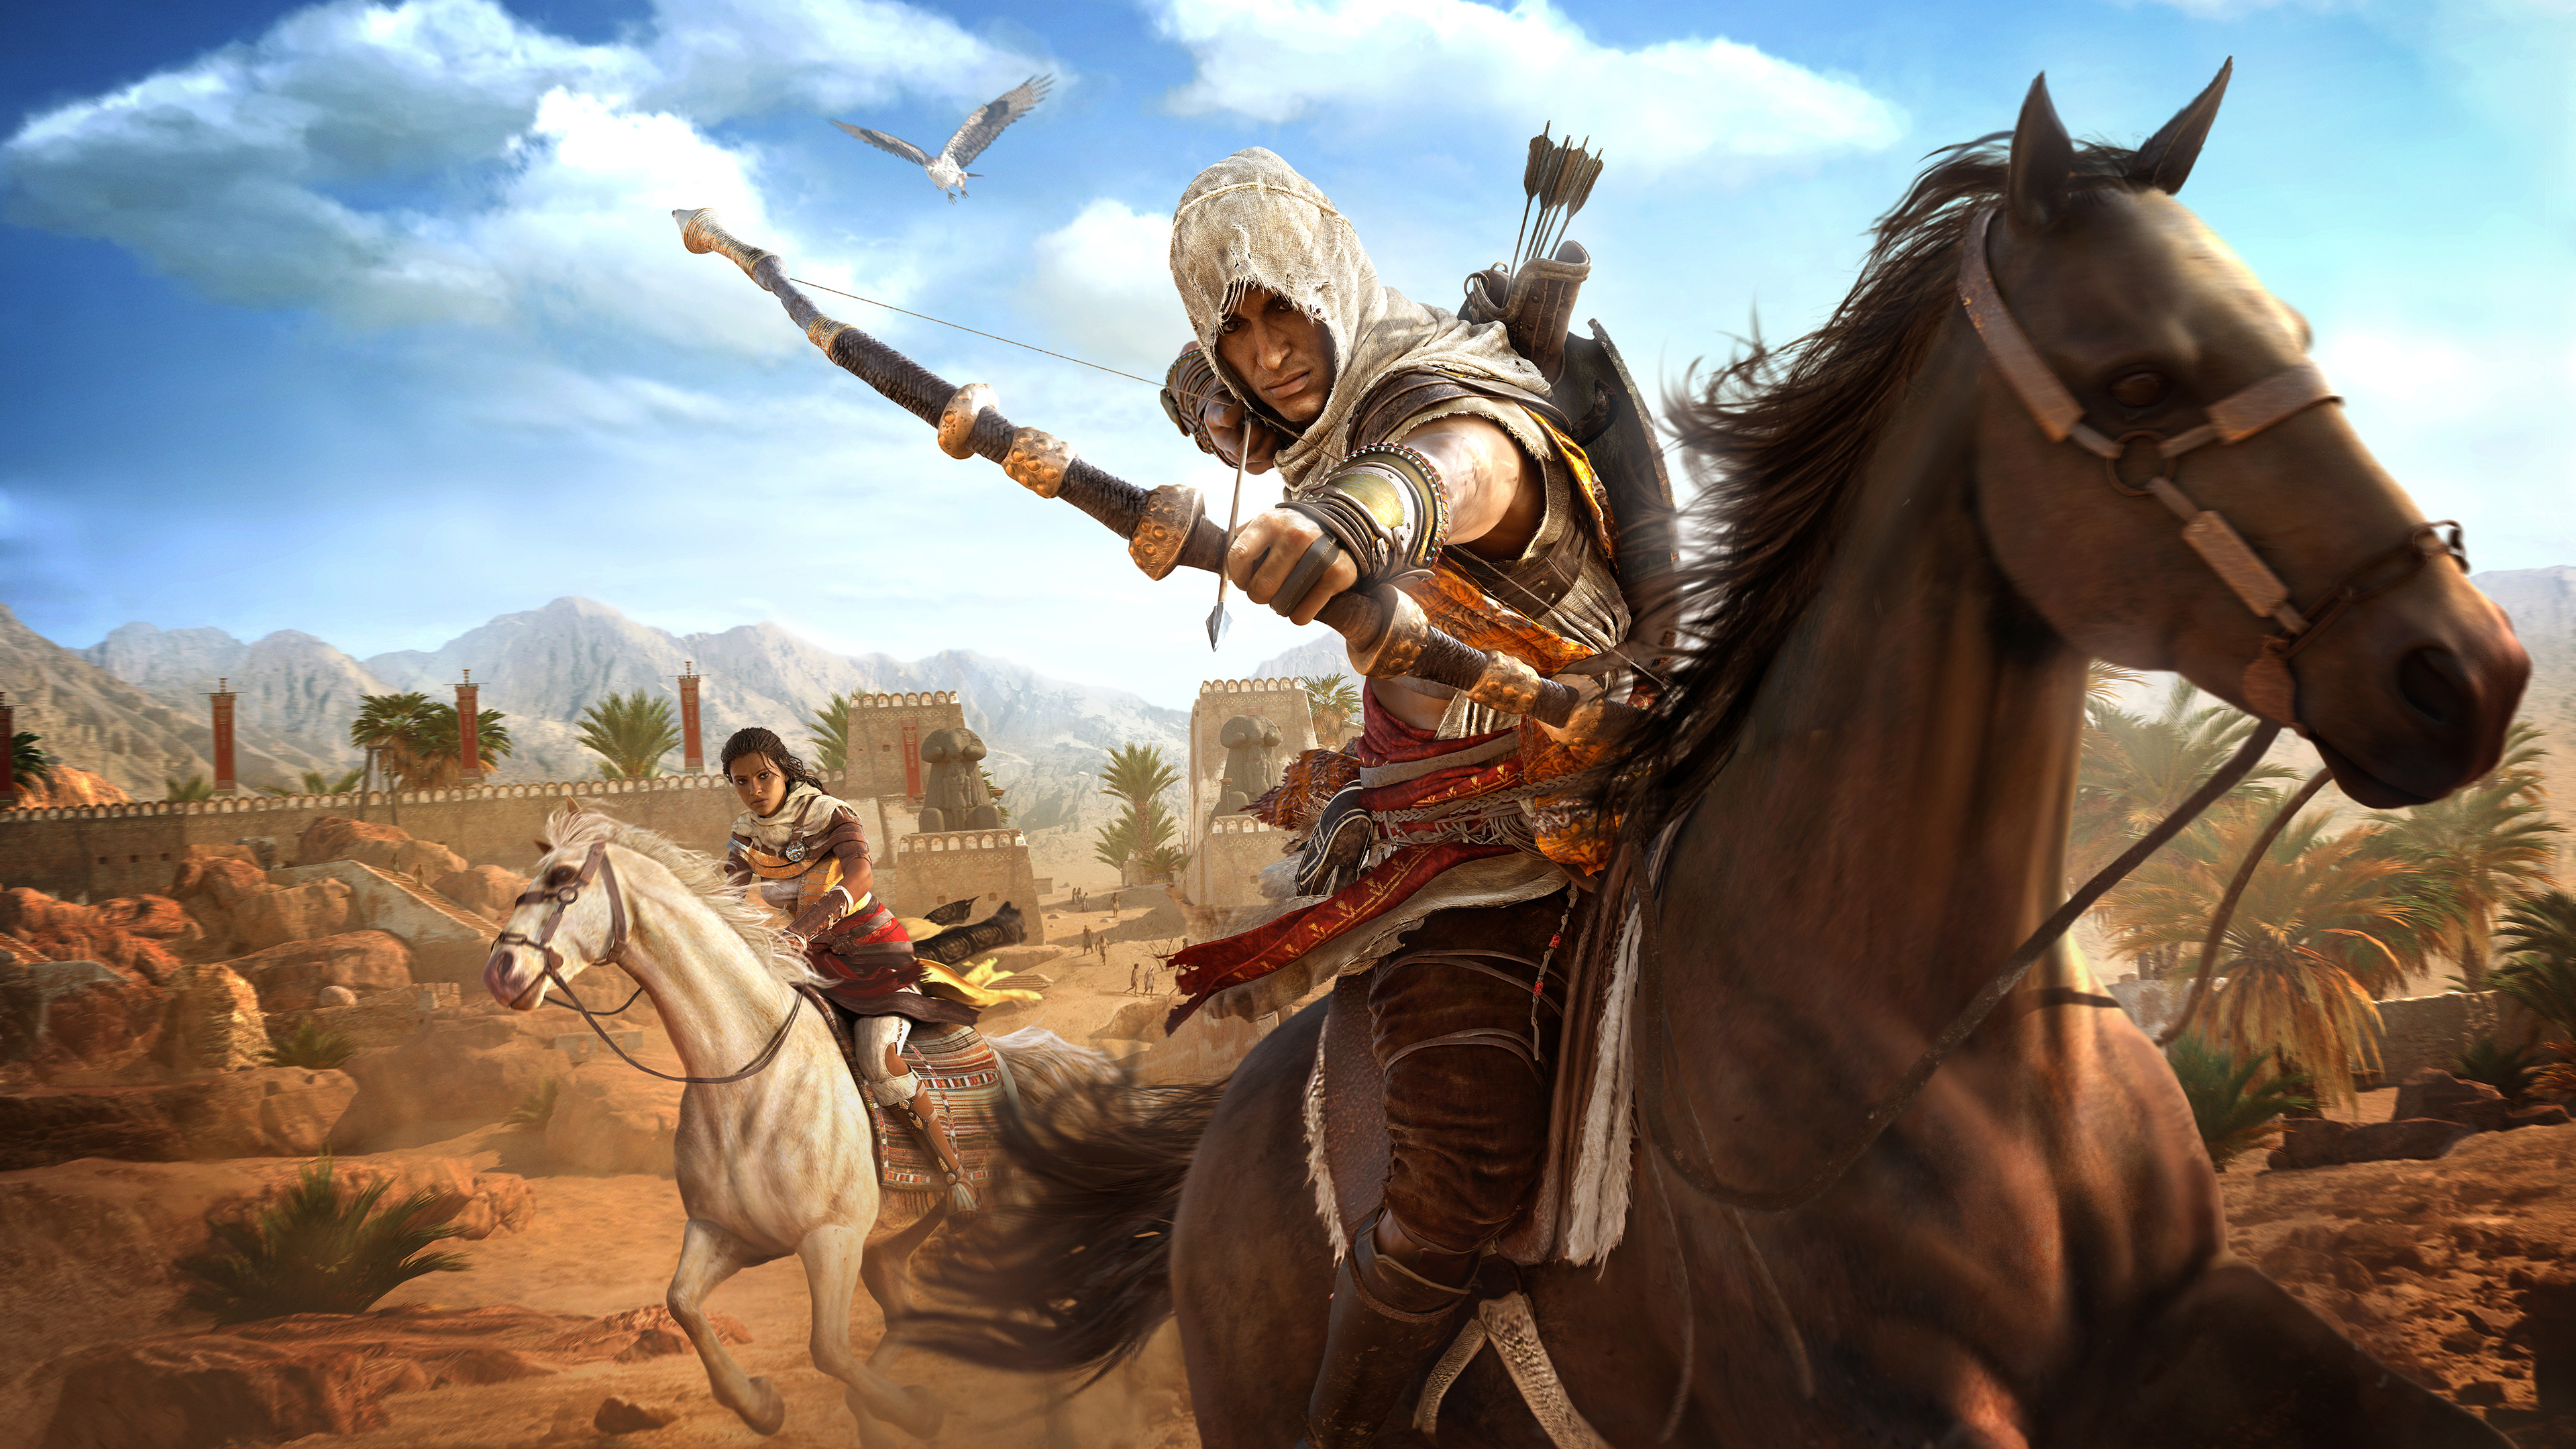 Assassins Creed Origins Bayek And Aya 4k Hd Games 4k Wallpapers